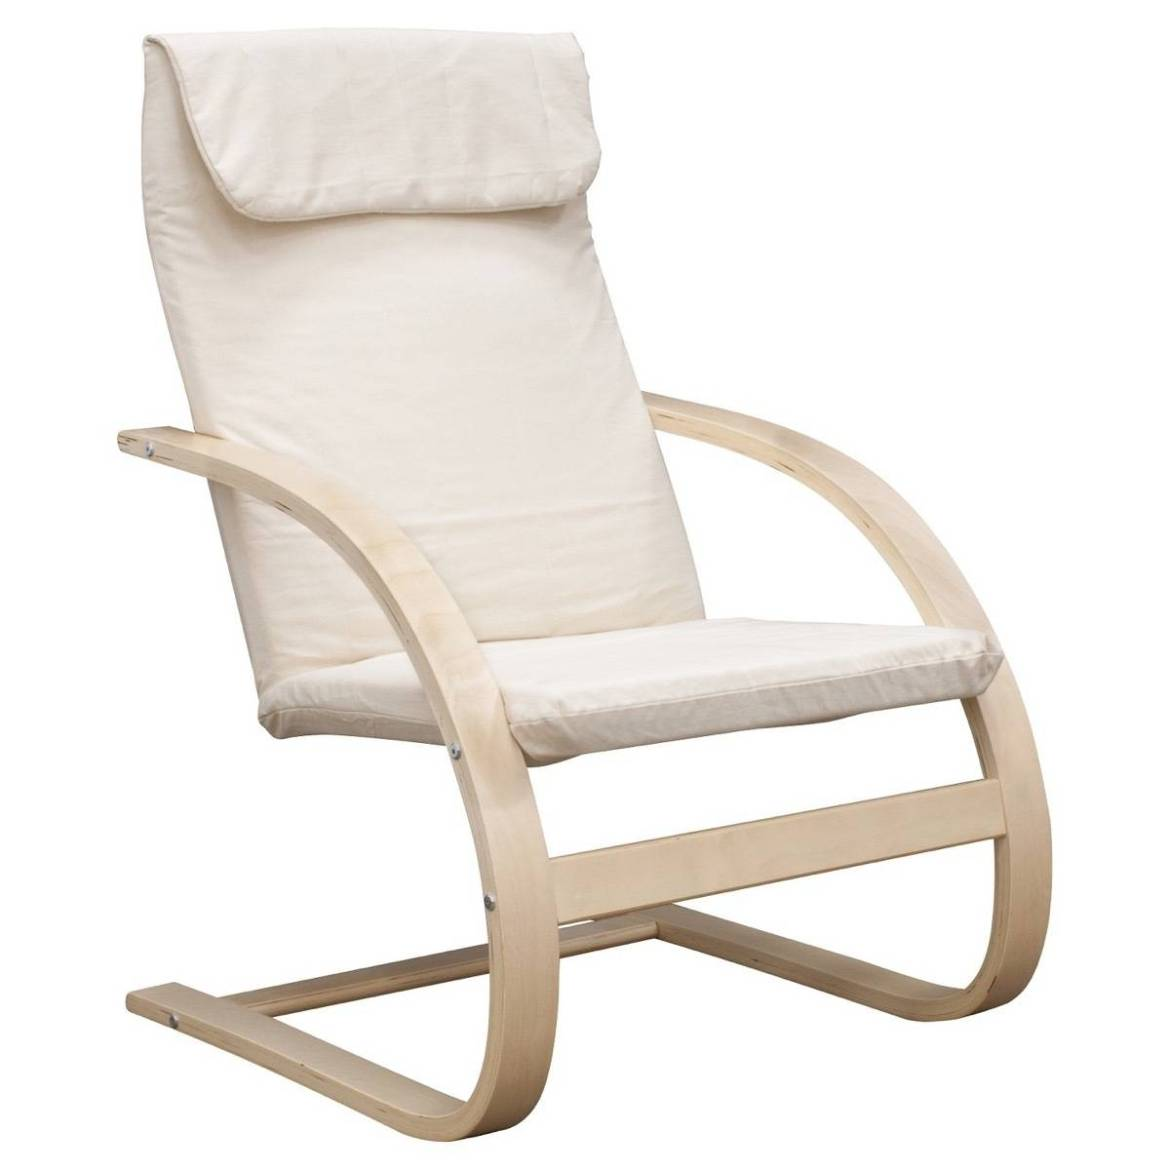 Bentwood lounge chair from Target